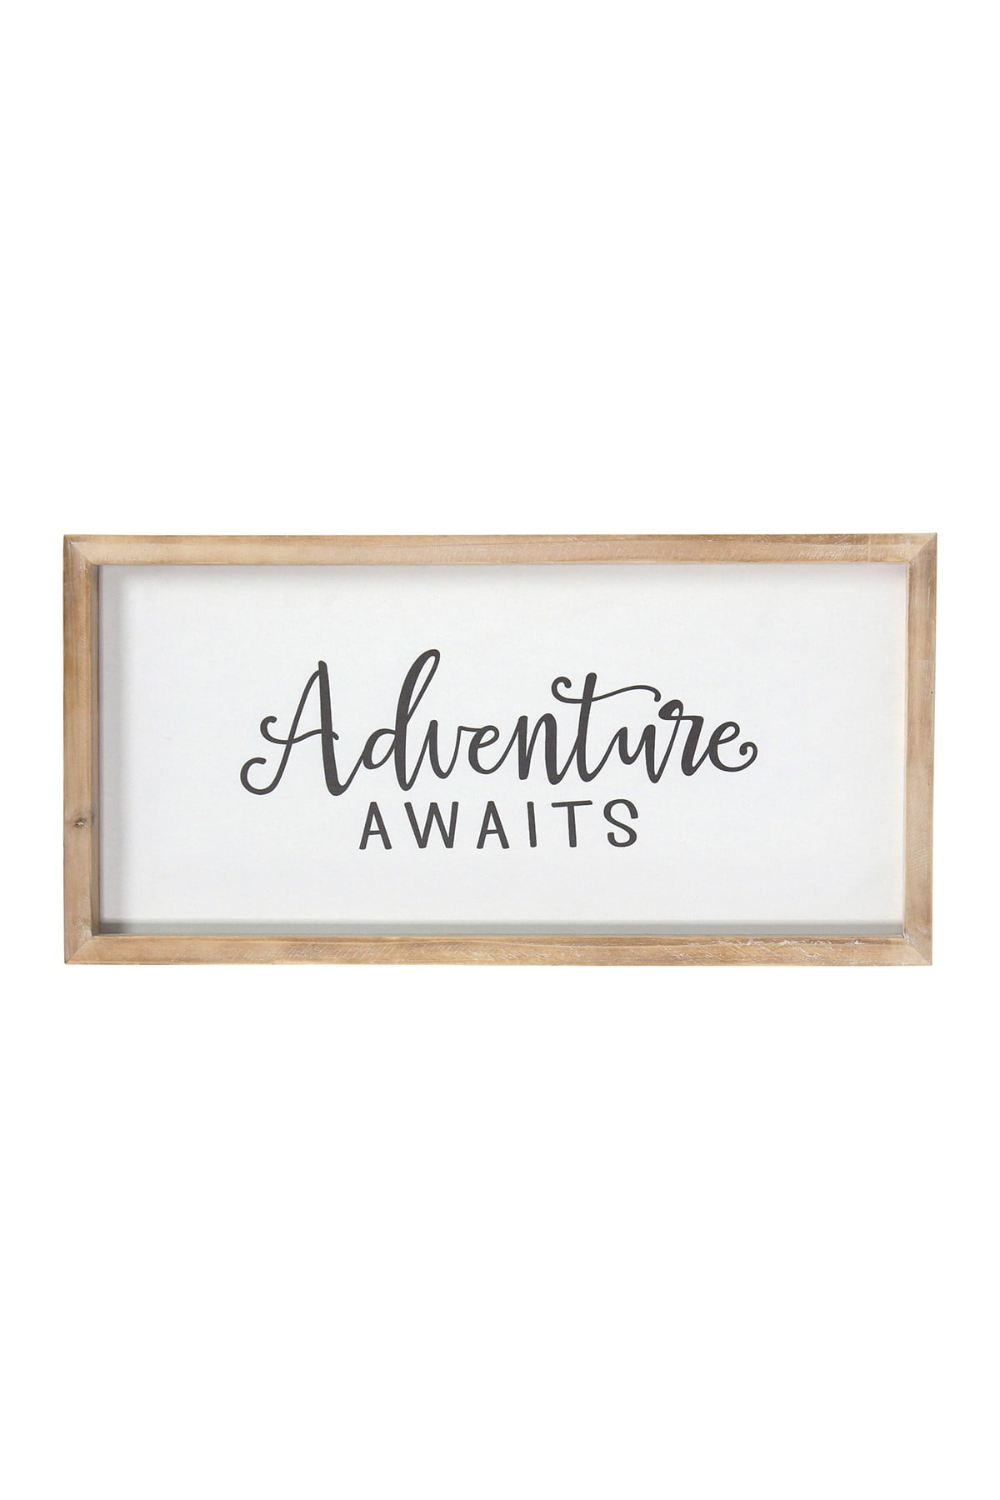 Stratton Home Adventure Awaits Wall Art Hautelook Adventure Wall Decor Adventure Wall Art Adventure Awaits Sign